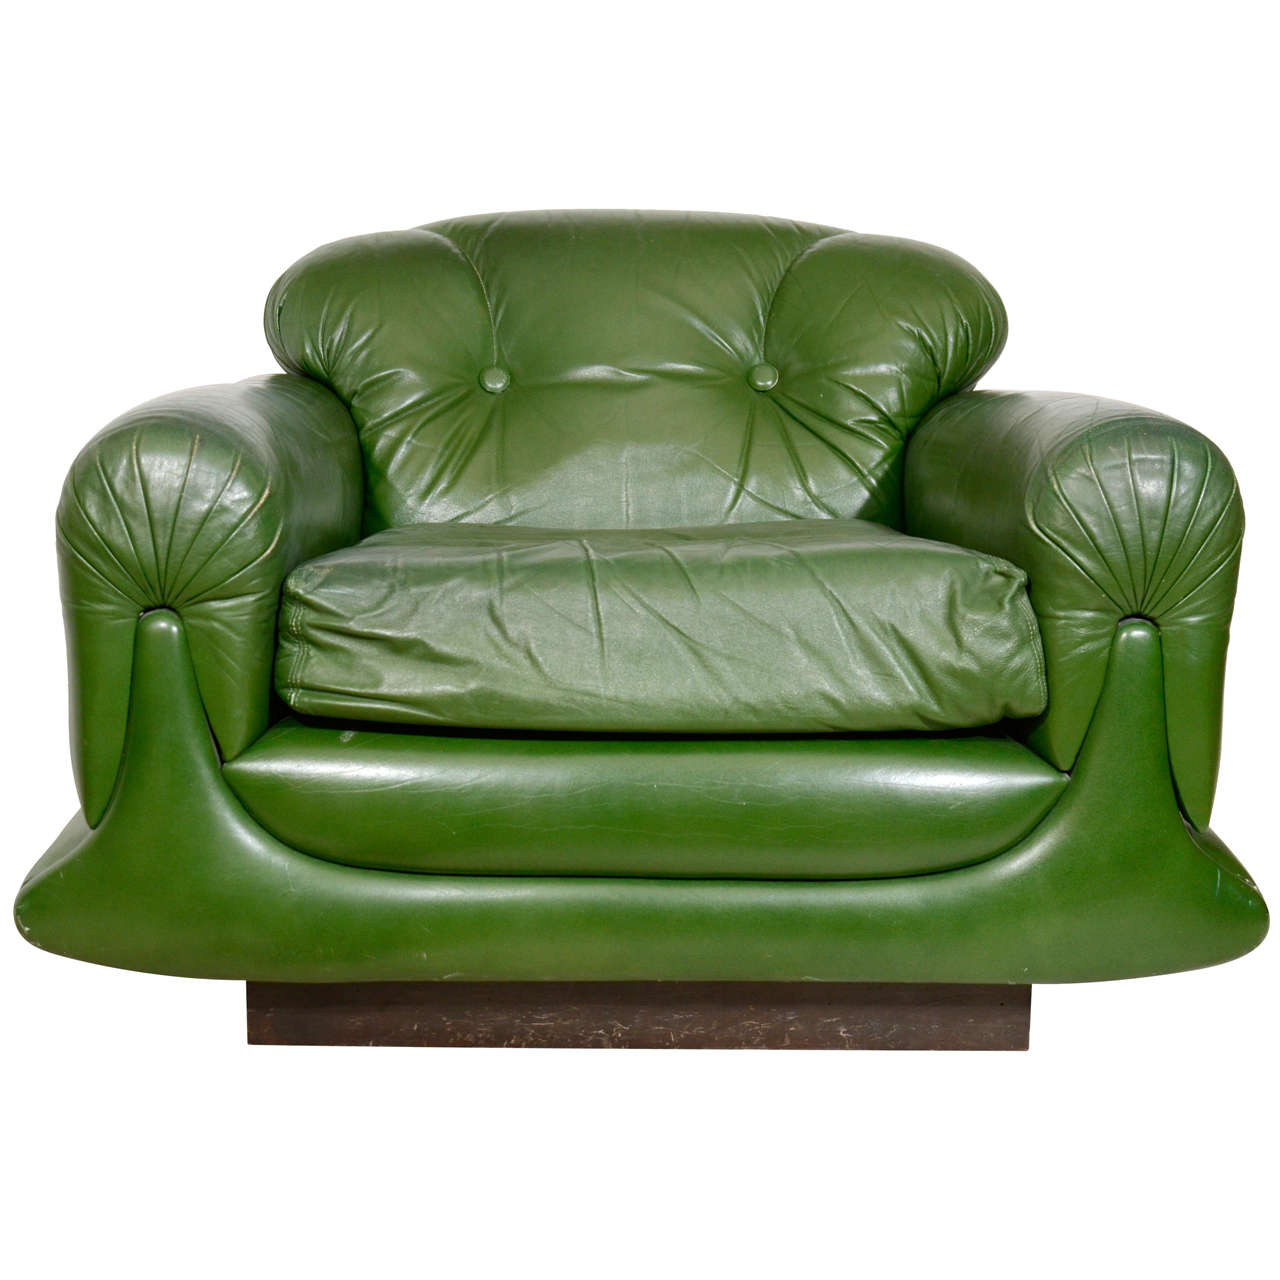 Overstuffed Wingback Chair Mod Overstuffed Green Leather Lounge Chair